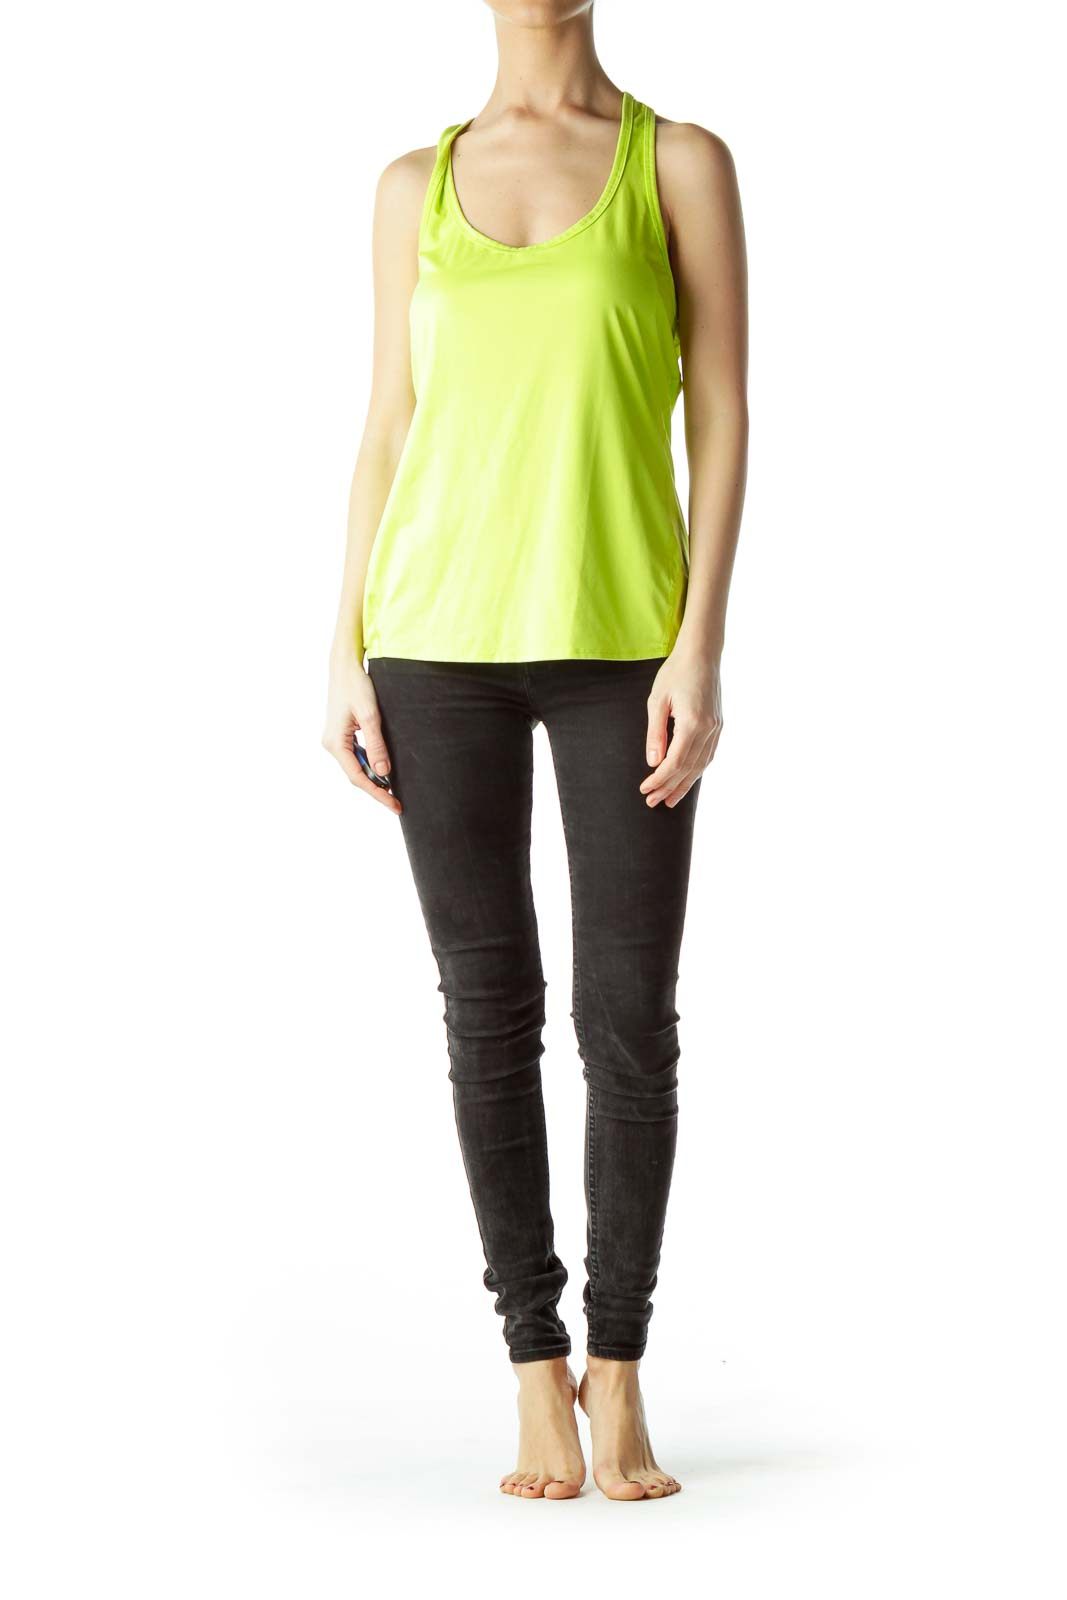 Fluorescent Green Sports Tank Top